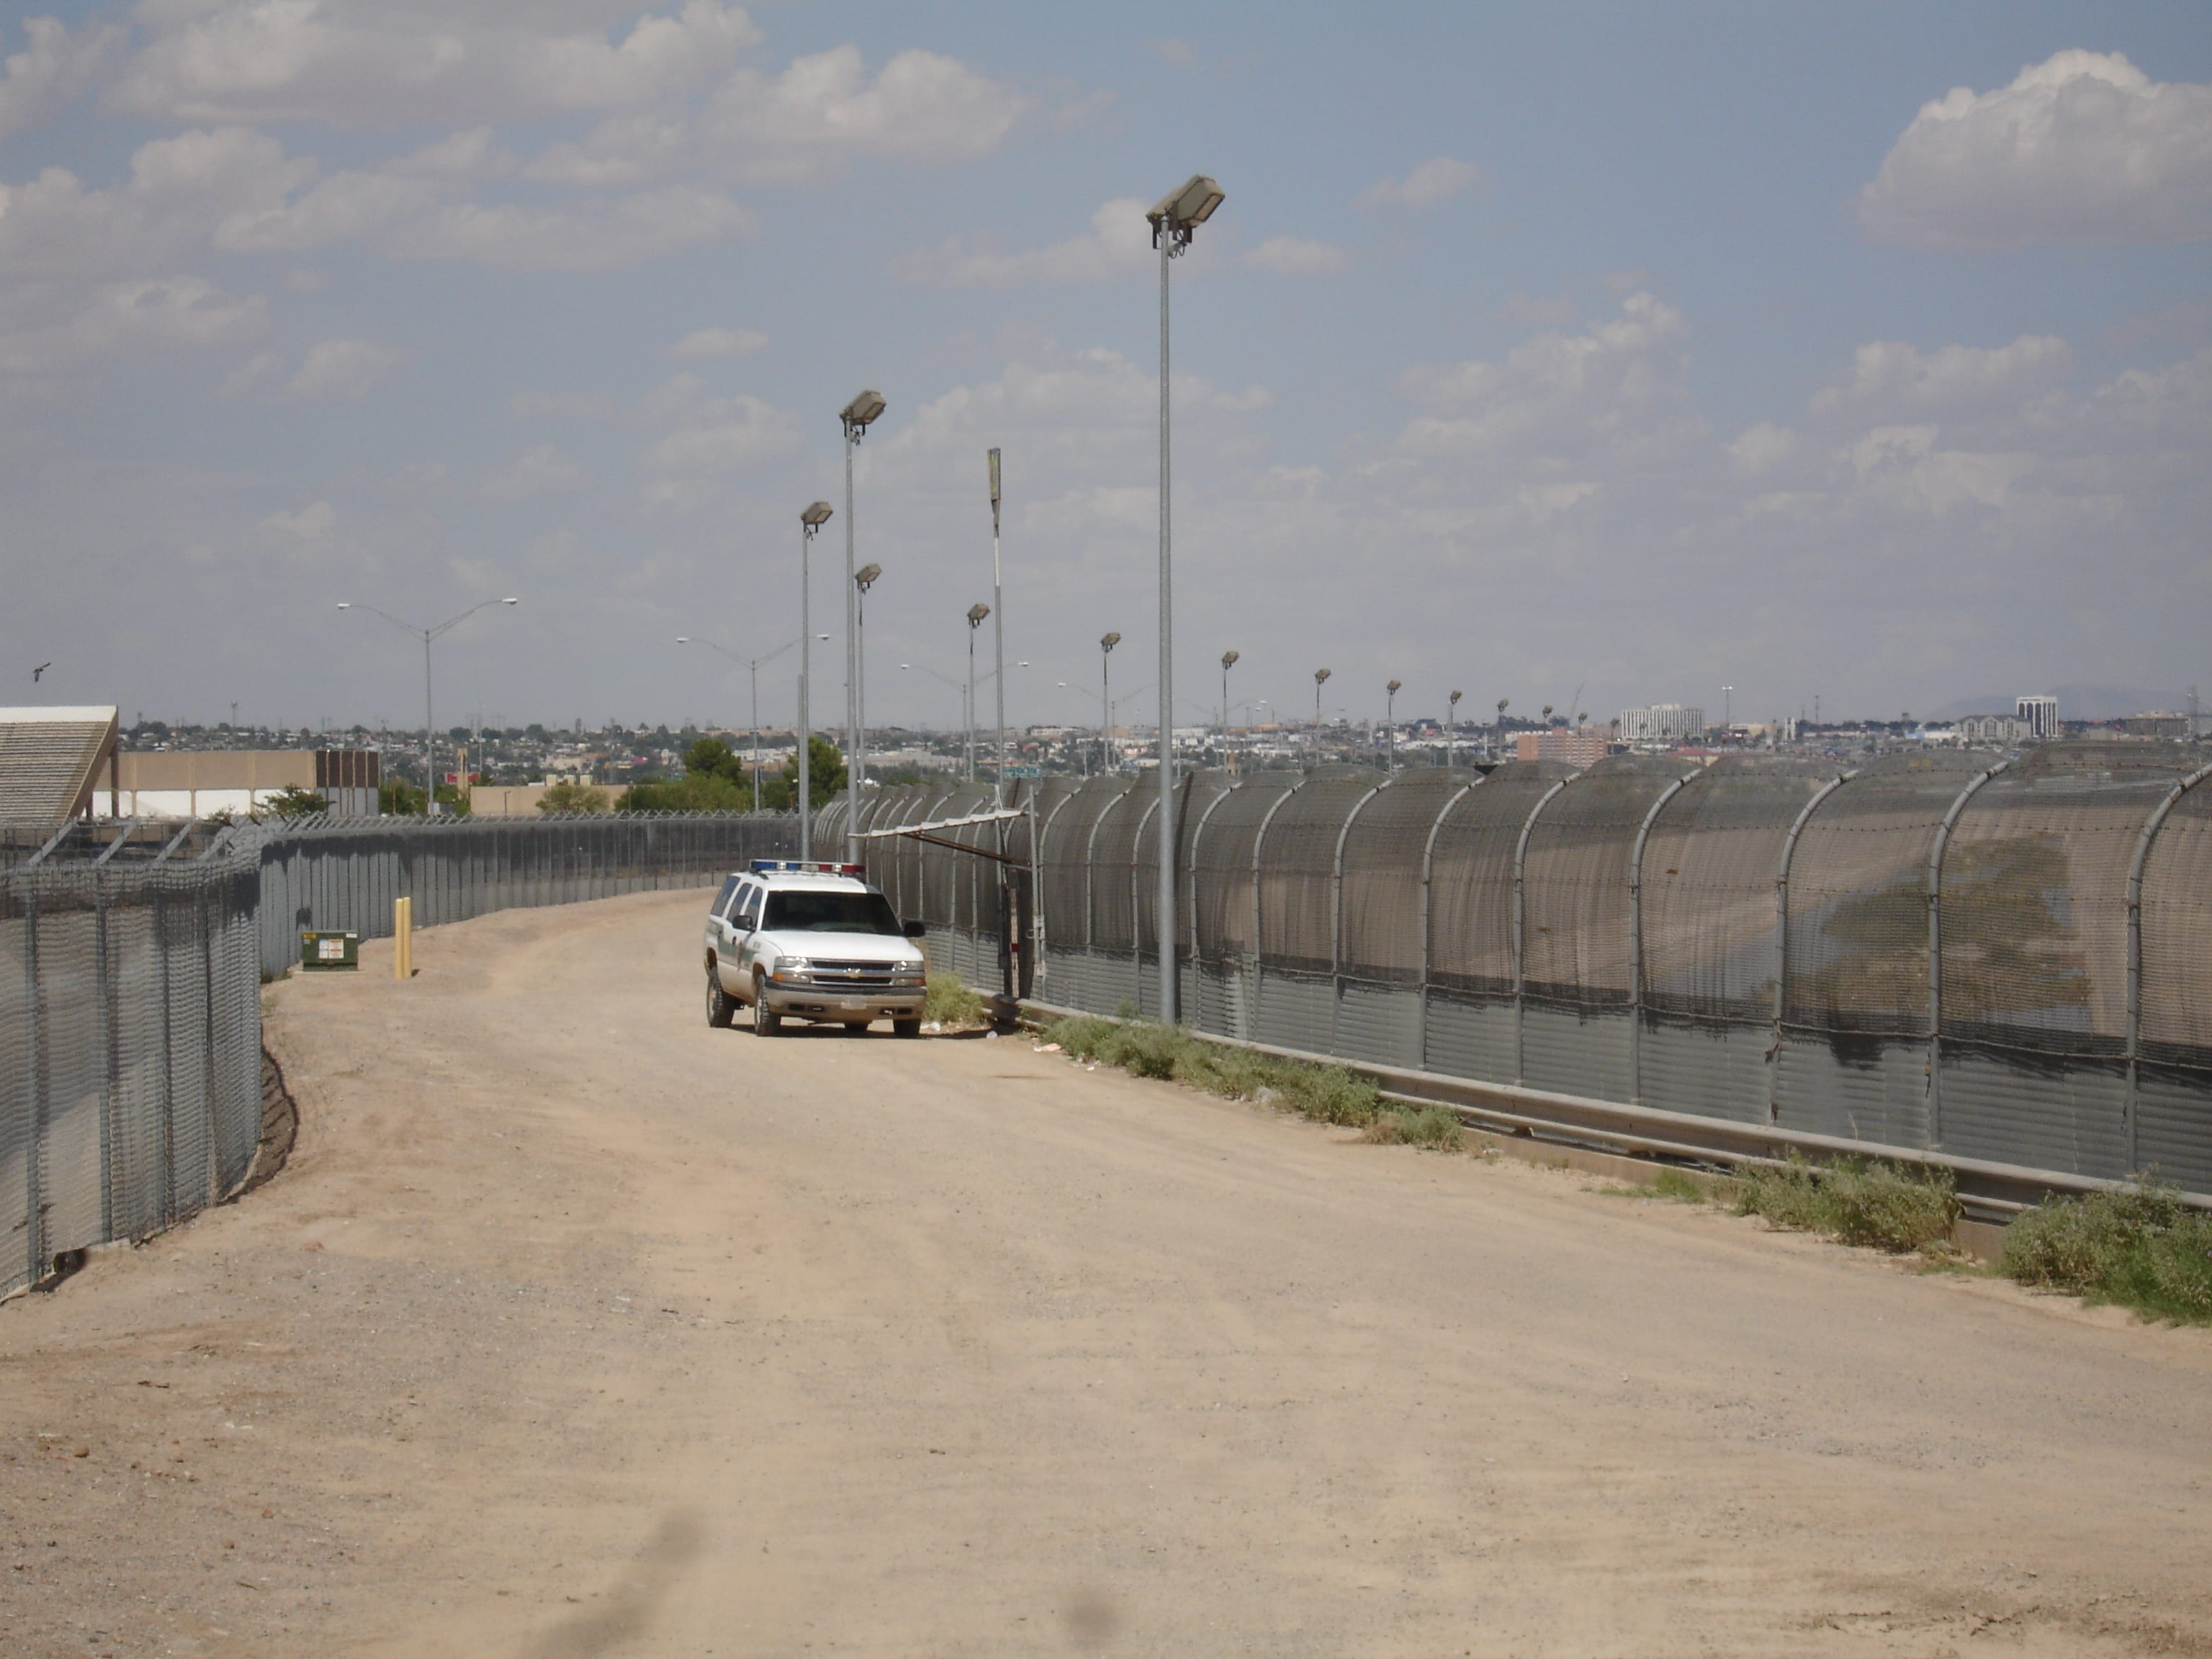 Faculty examine complex border issues